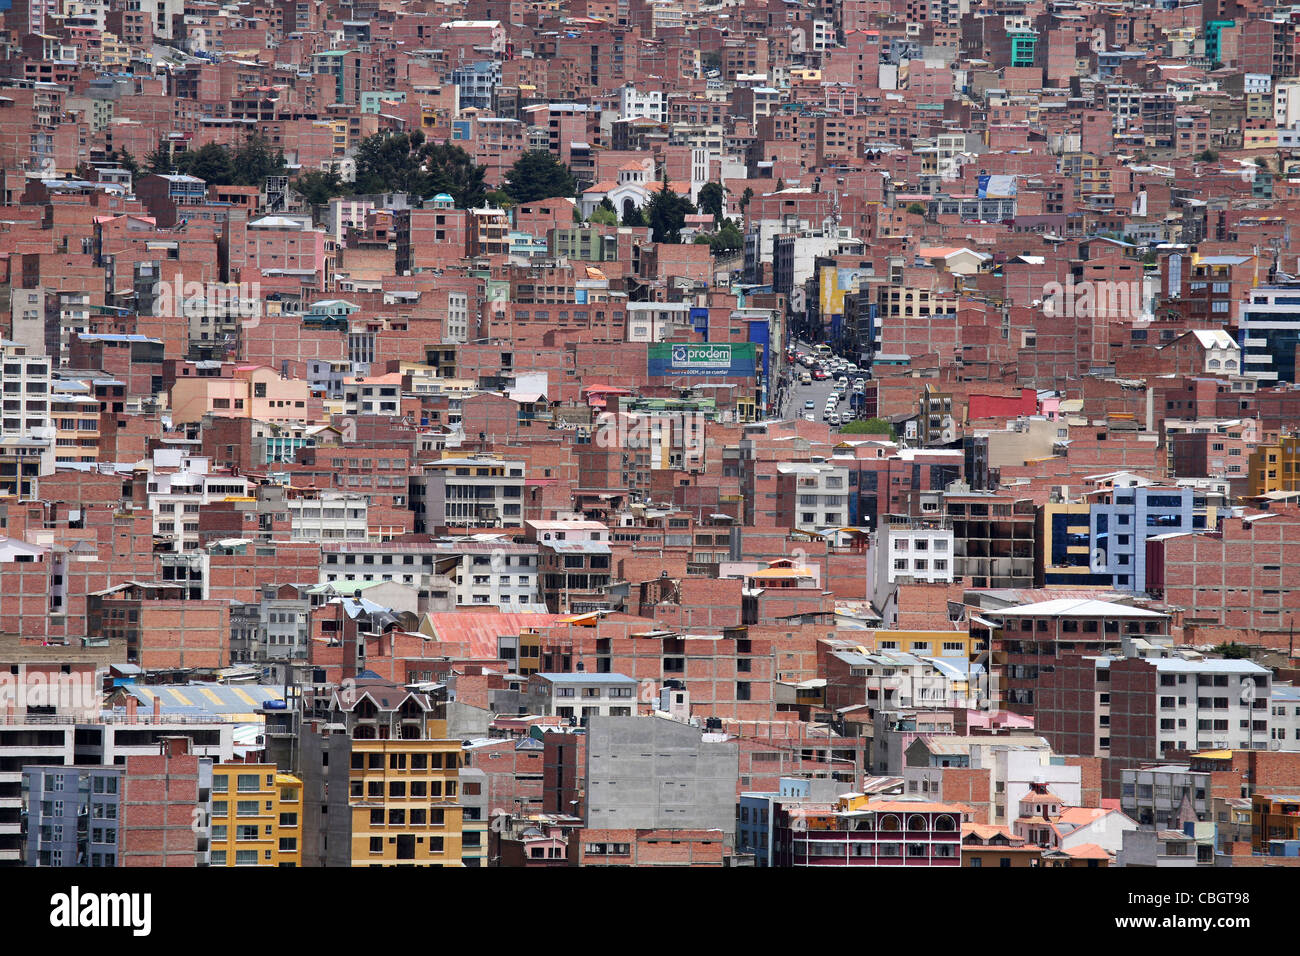 View over flats and apartments of the city La Paz, Bolivia - Stock Image